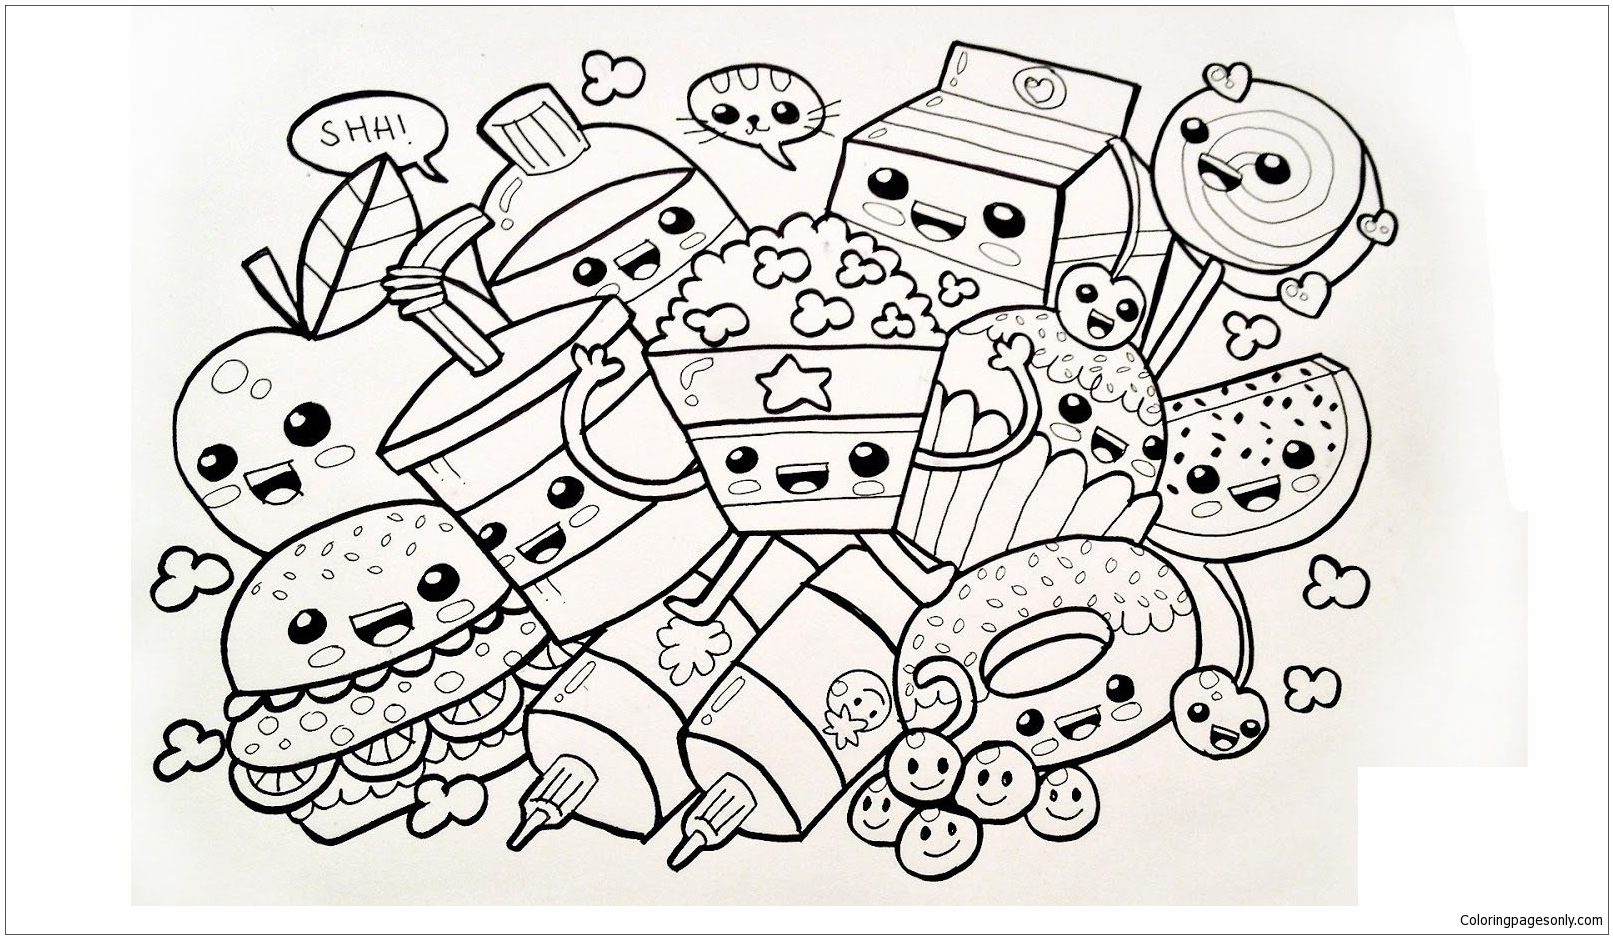 Cute Food Coloring Page - Free Coloring Pages Online